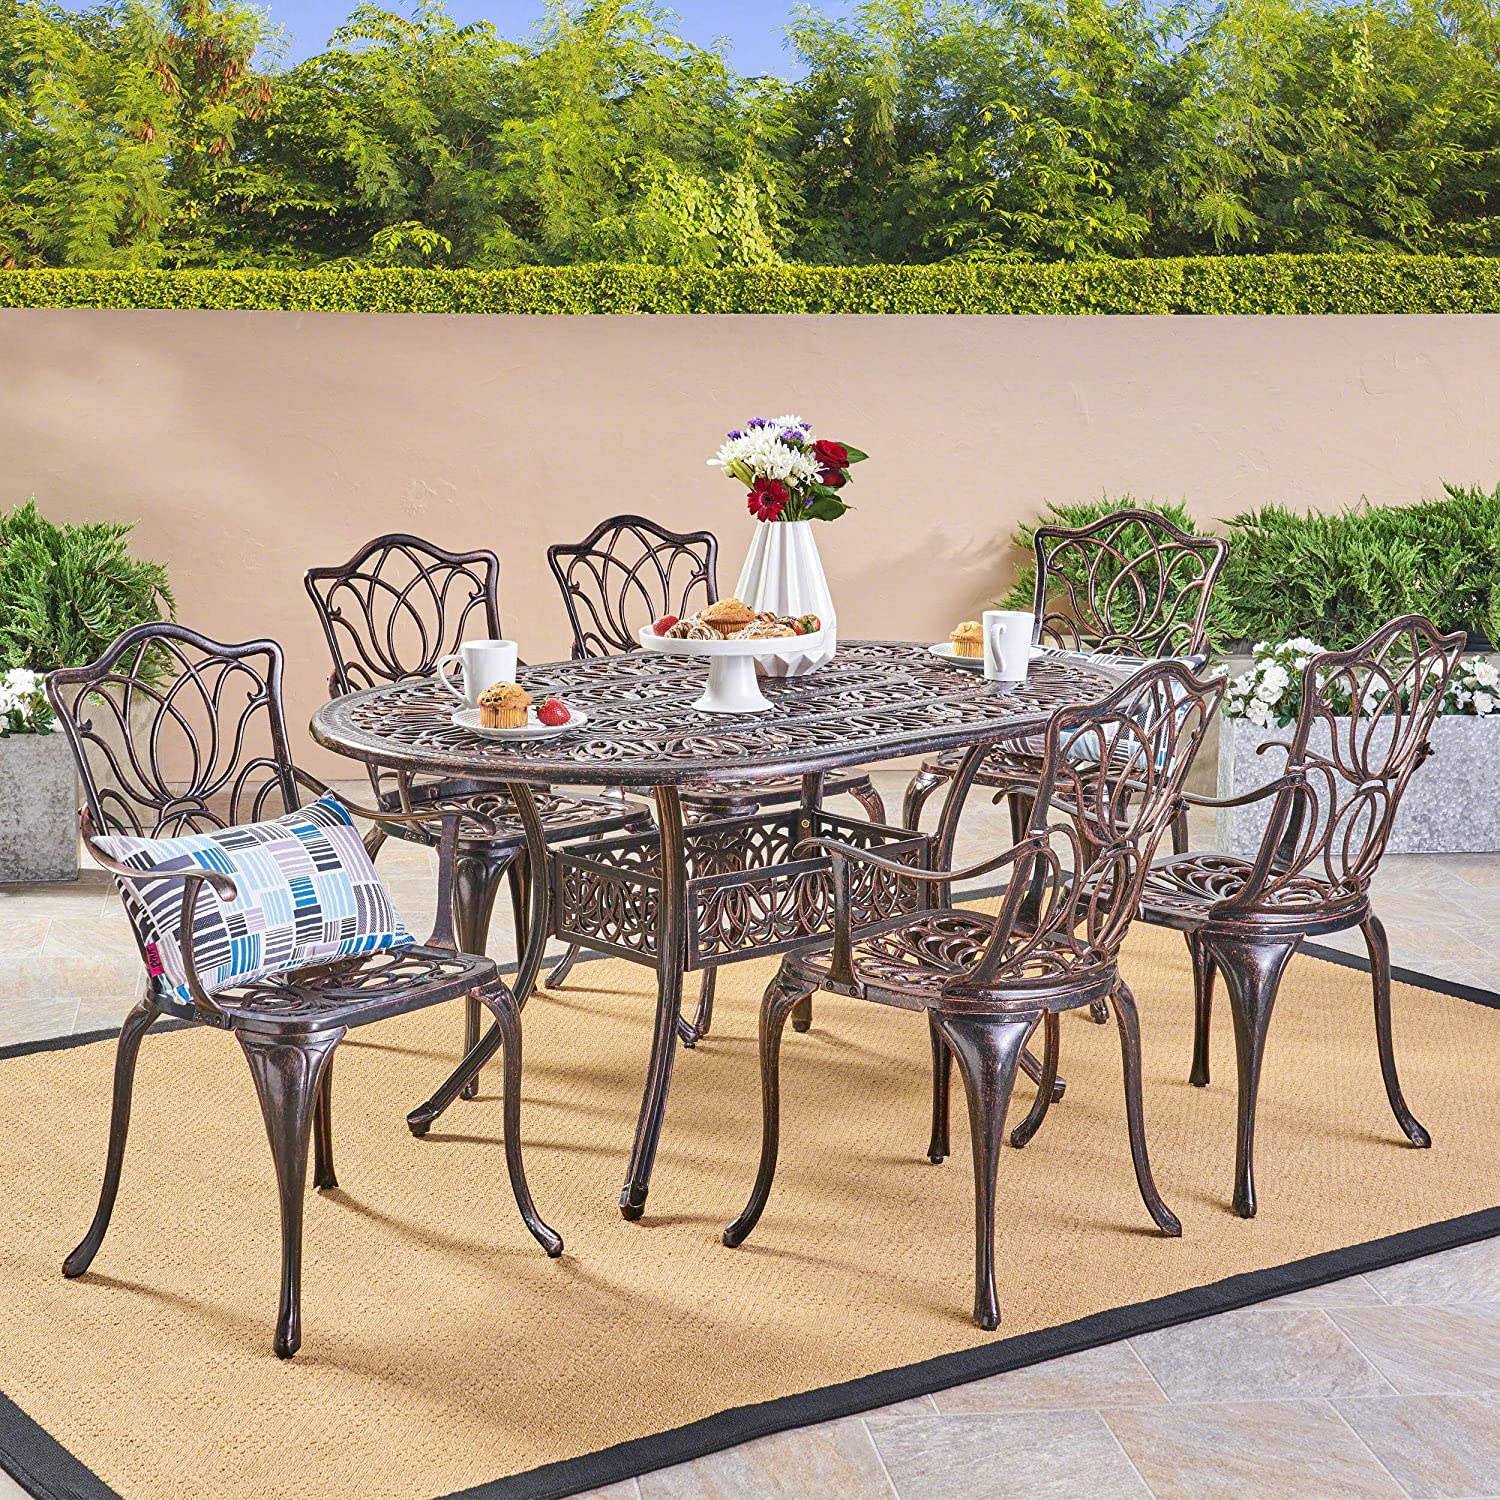 Christopher Knight Home Gardena Outdoor Furniture Dining Set, Table and Chairs for Patio or Deck in Copper 7-Piece Set